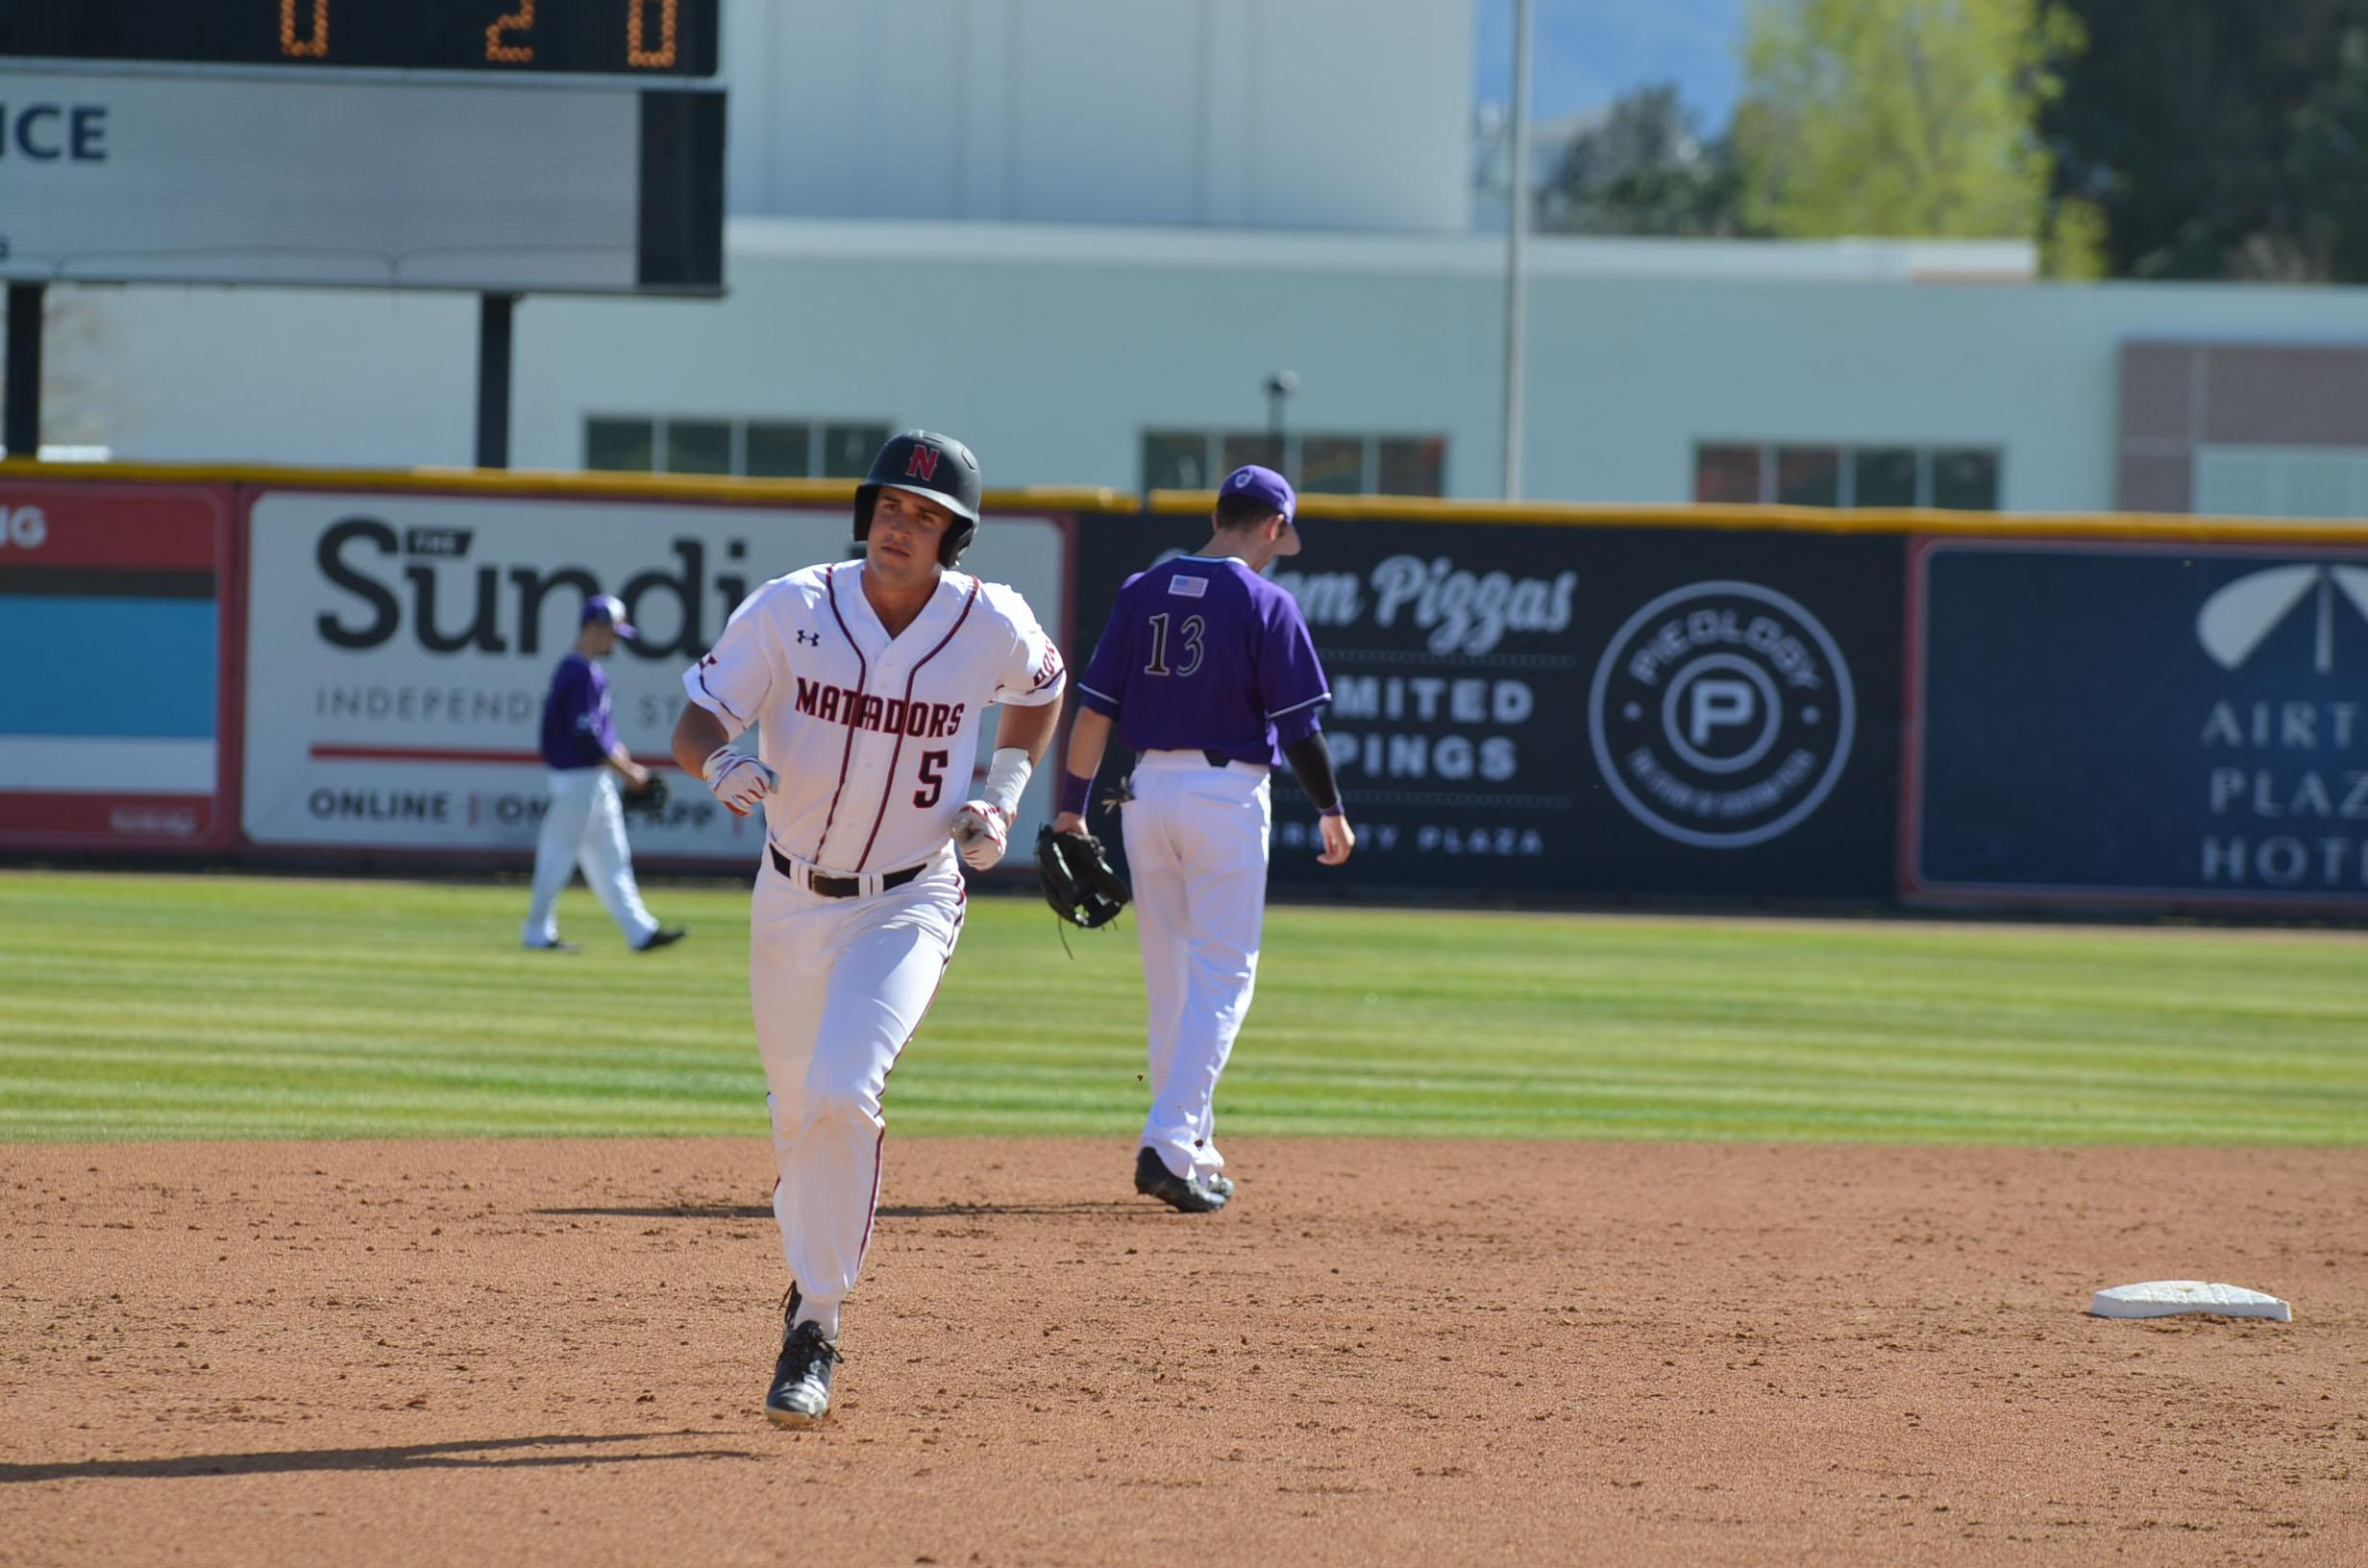 Junior third baseman Nolan Bumstead, #5, runs to third base after hitting a home run in the bottom of Wednesday's game against Holy Cross on March 8, 2017. Bumstead's homerun brought the Matadors to a lead of 2-0. Photo Credit: Anthony Martinez/The Sundial